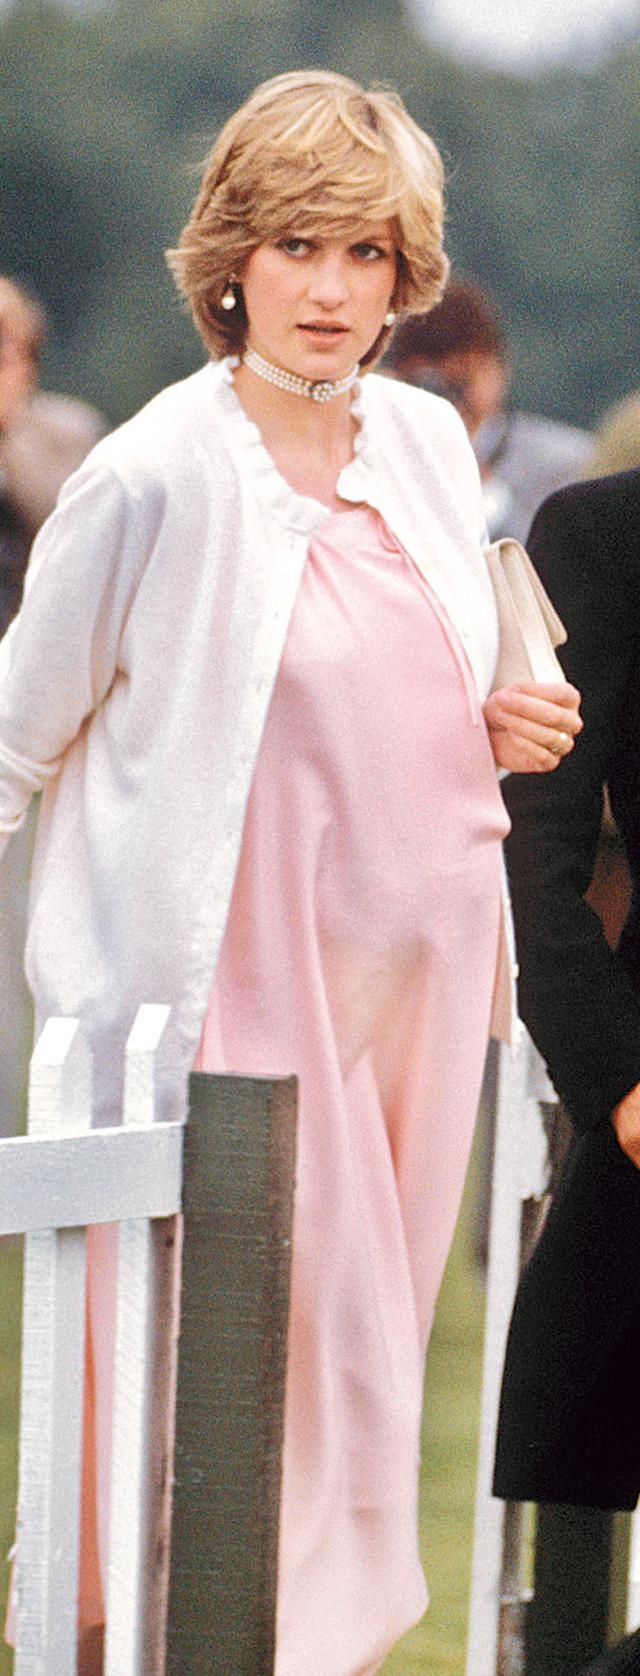 June 14, 1982: Princess Diana attended Ascot then, she attended a polo match at Smith's Lawn in Windsor, minus her hat and adding a white cardigan to her look.